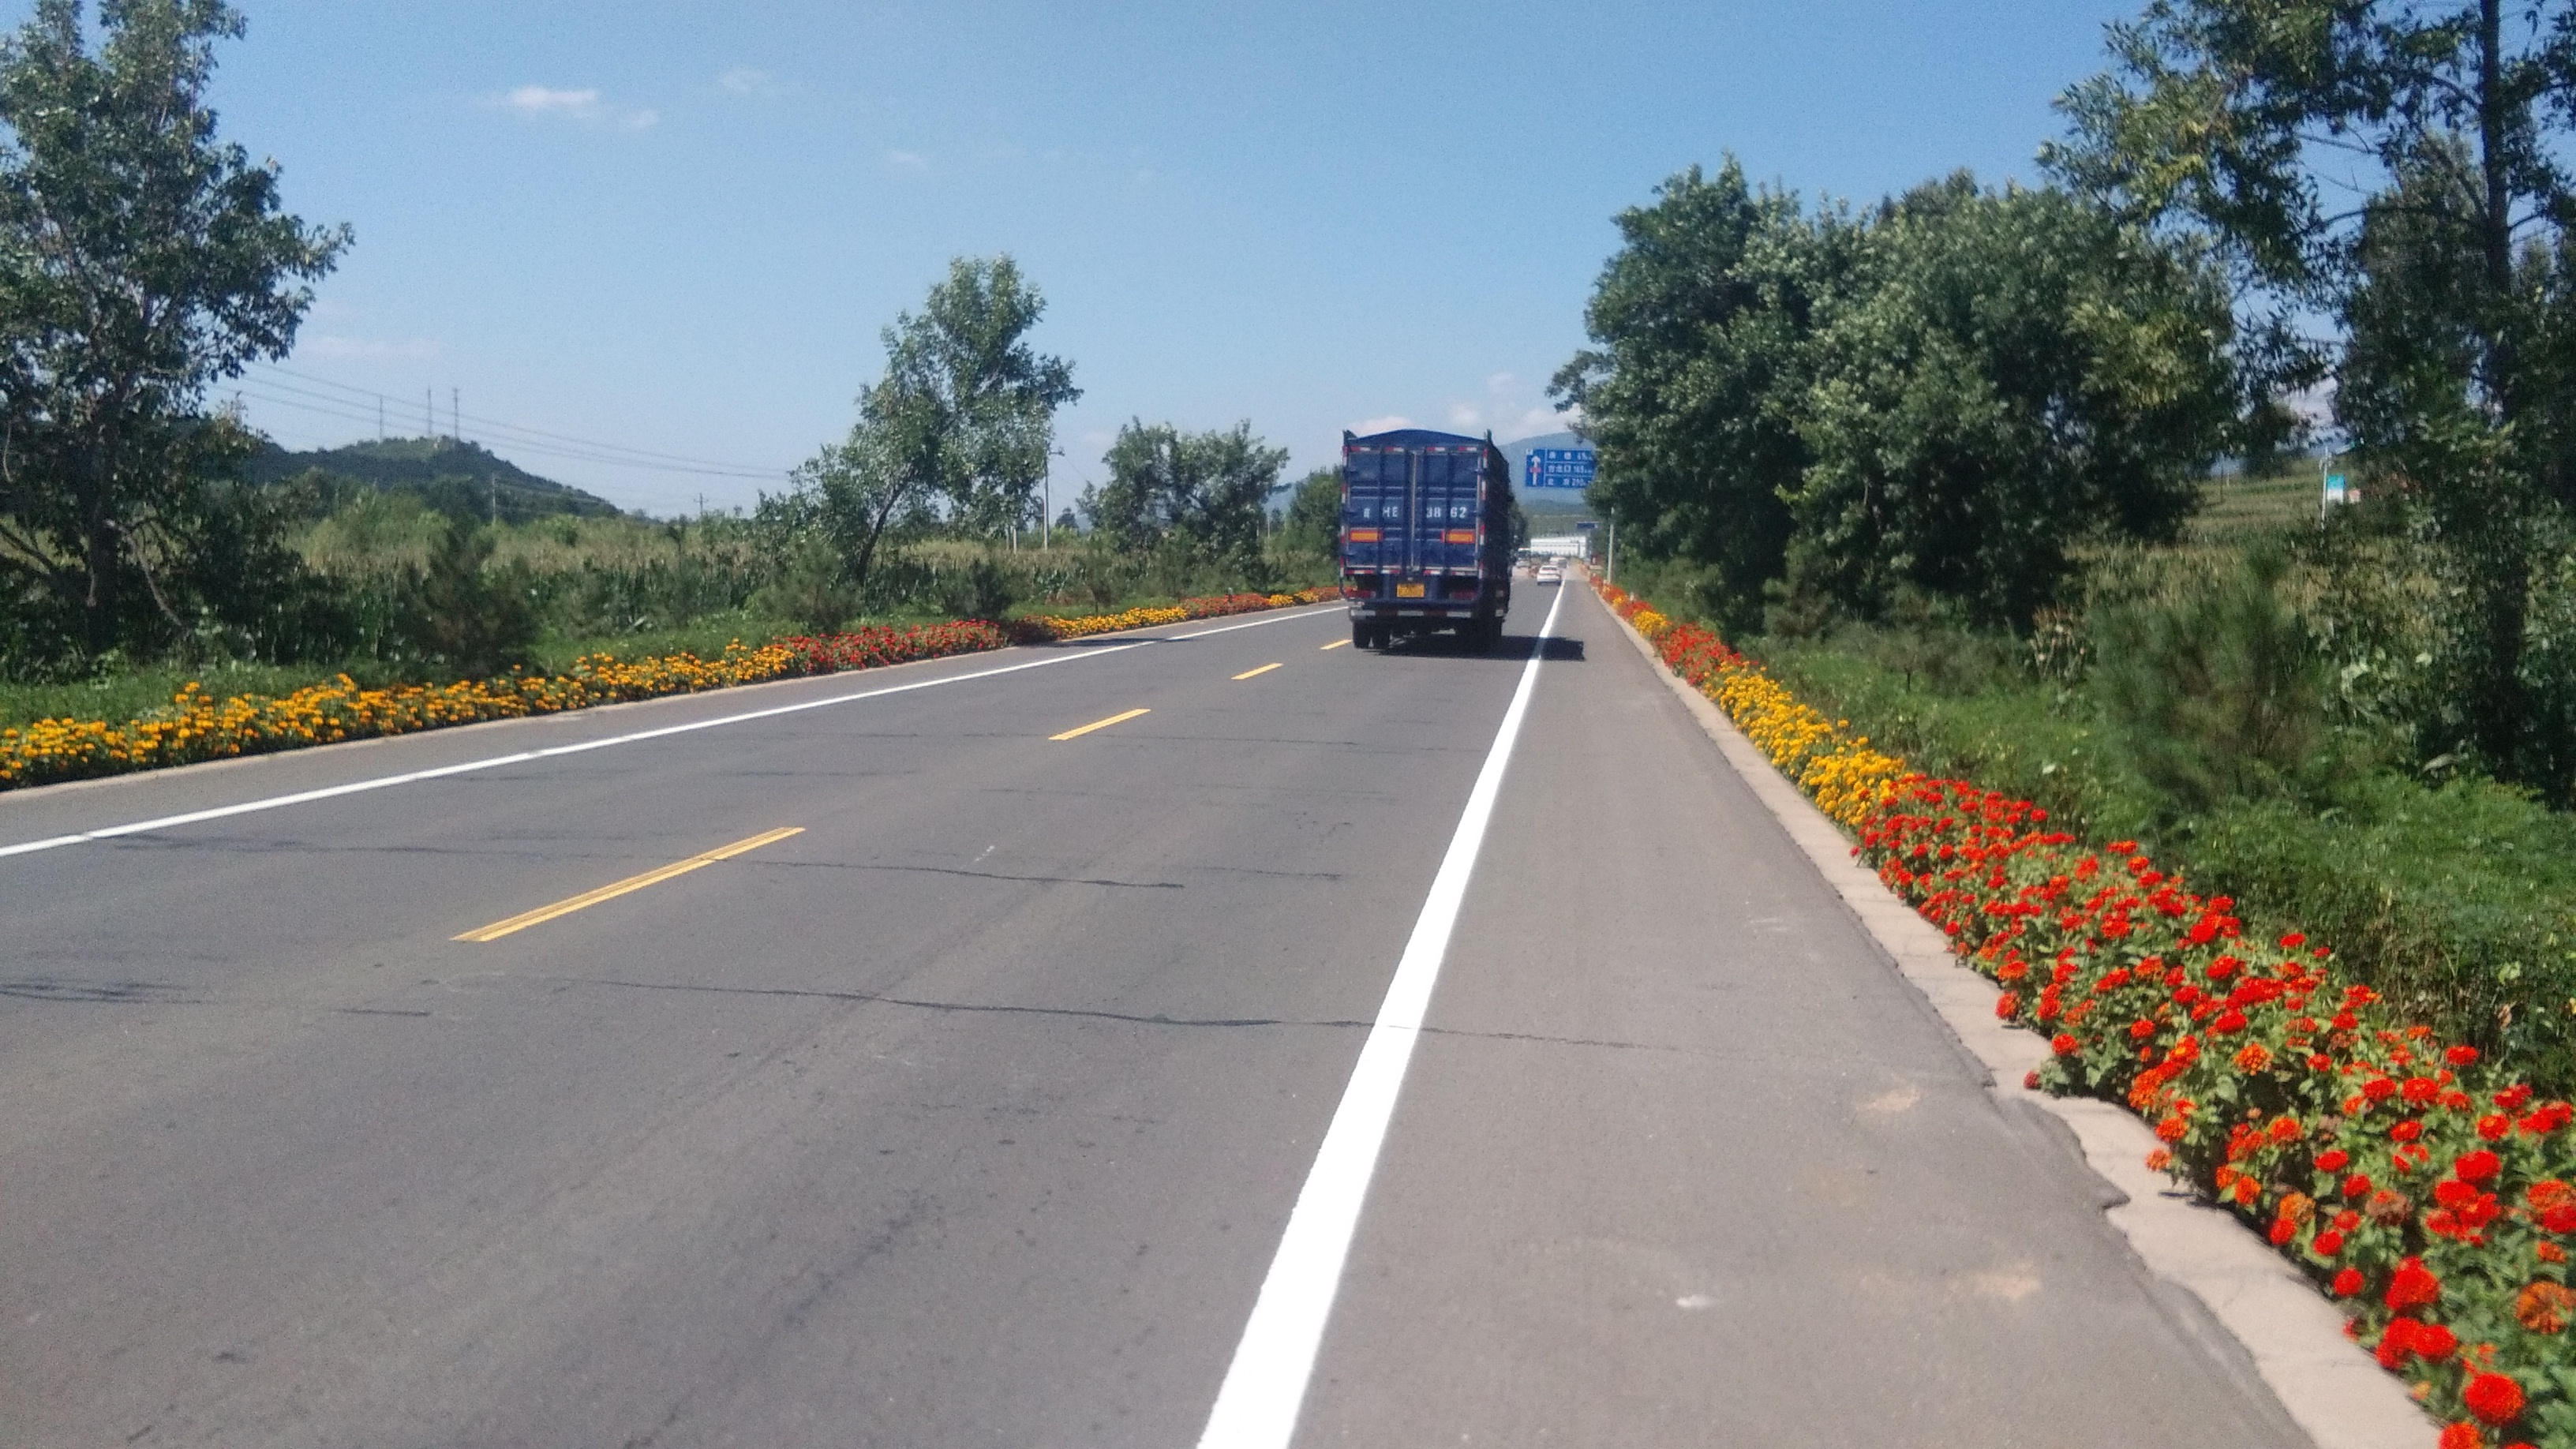 Perfectly decorated and maintained roads. Very common.